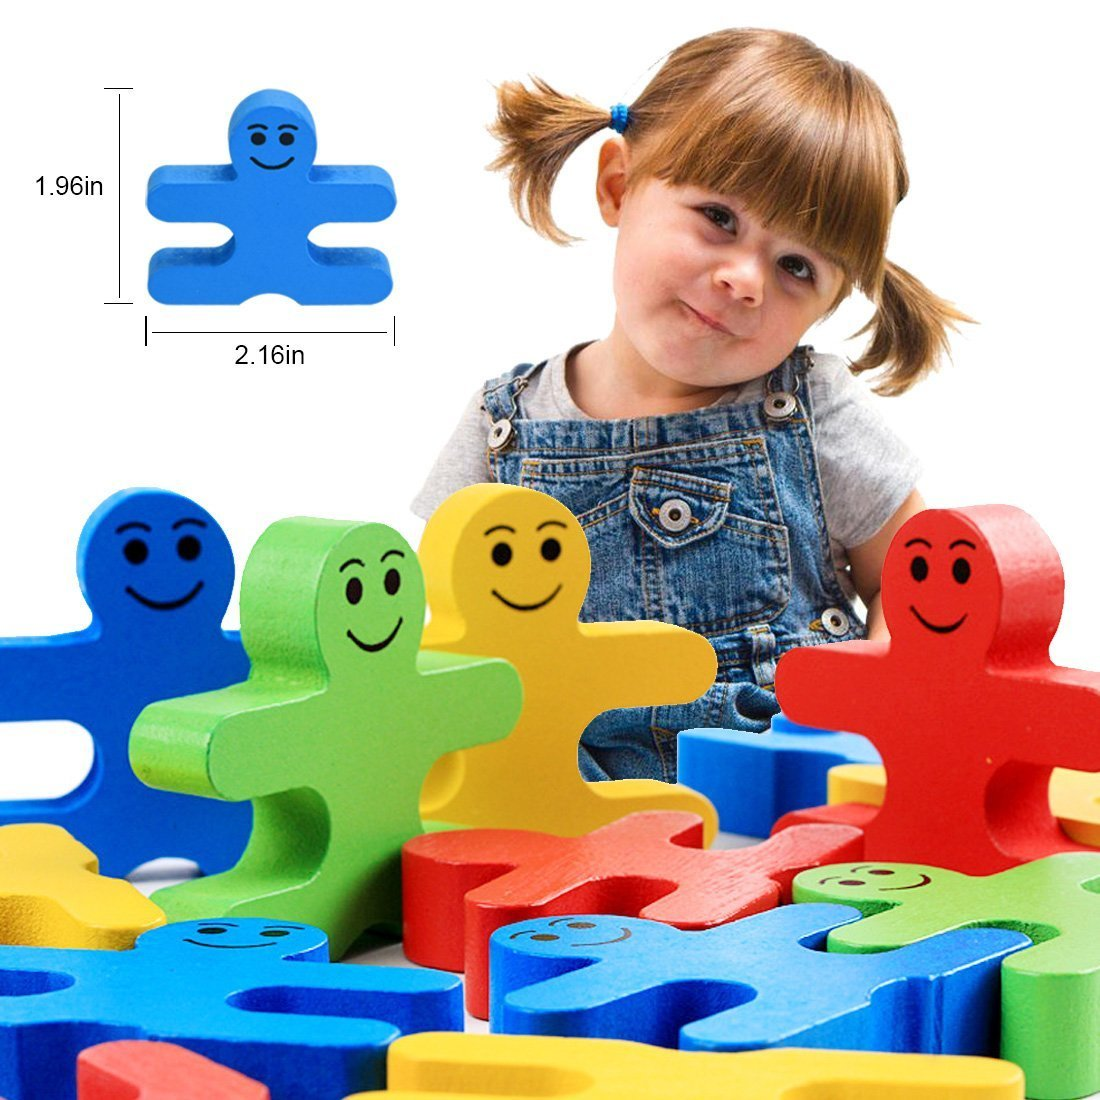 Agirlgle Wood Building Blocks Stacking Game Toys for Kids Children Toddlers Preschool Boys and Girls Learning Educational Toys 3D Wooden Assembled Toys Tile Balance Block Game 4 Color,16 Pieces